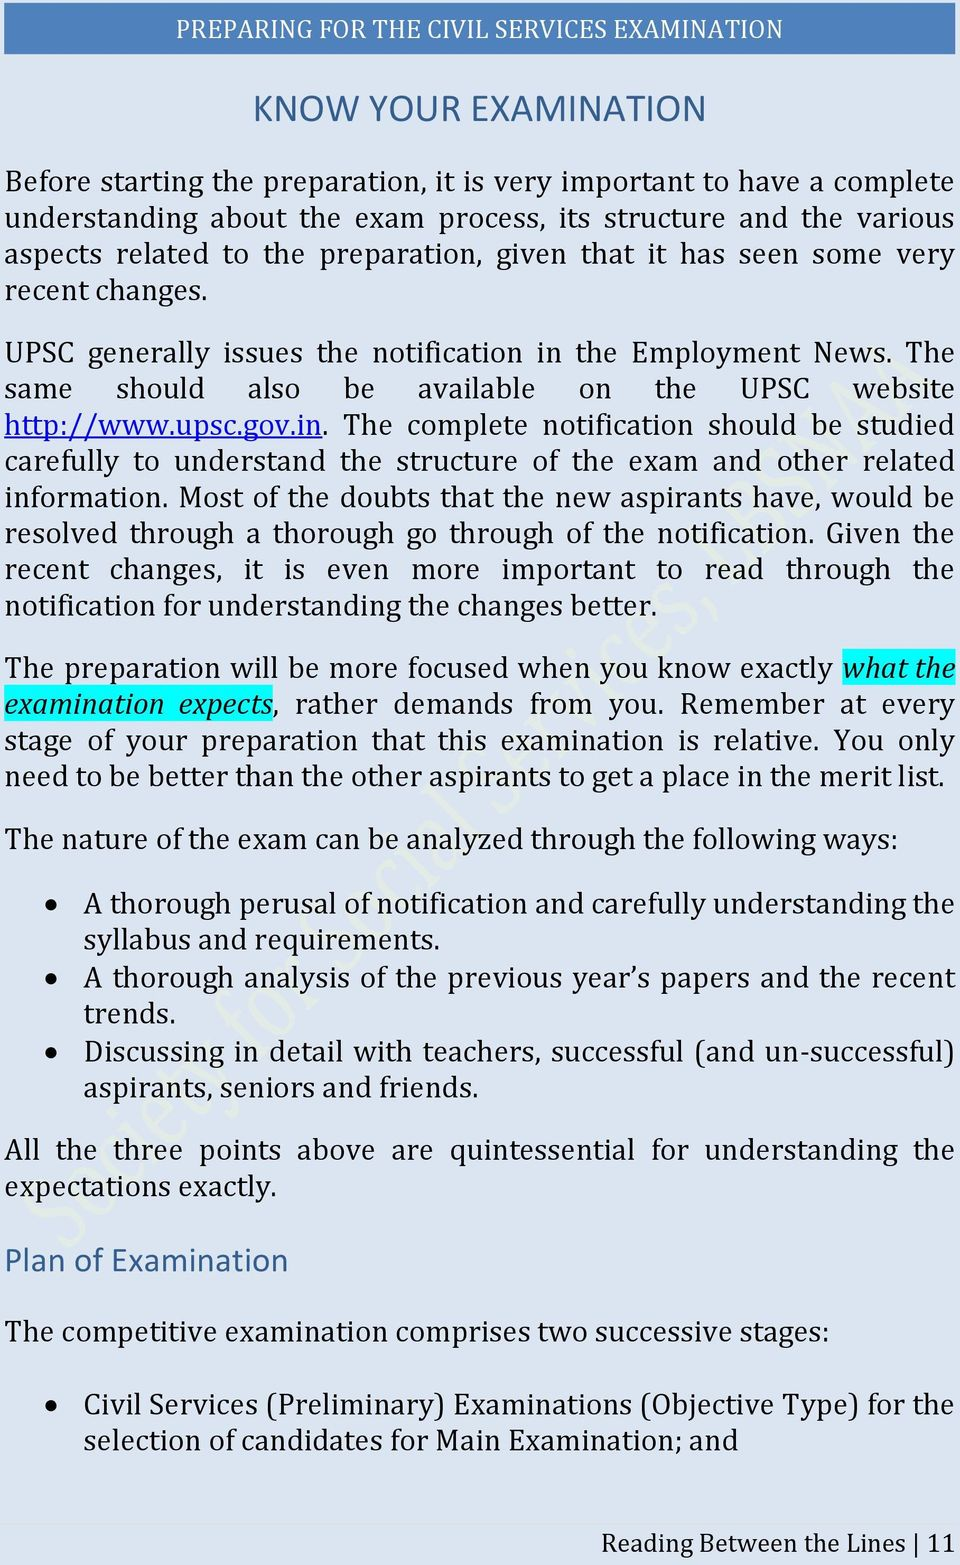 the Employment News. The same should also be available on the UPSC website http://www.upsc.gov.in.